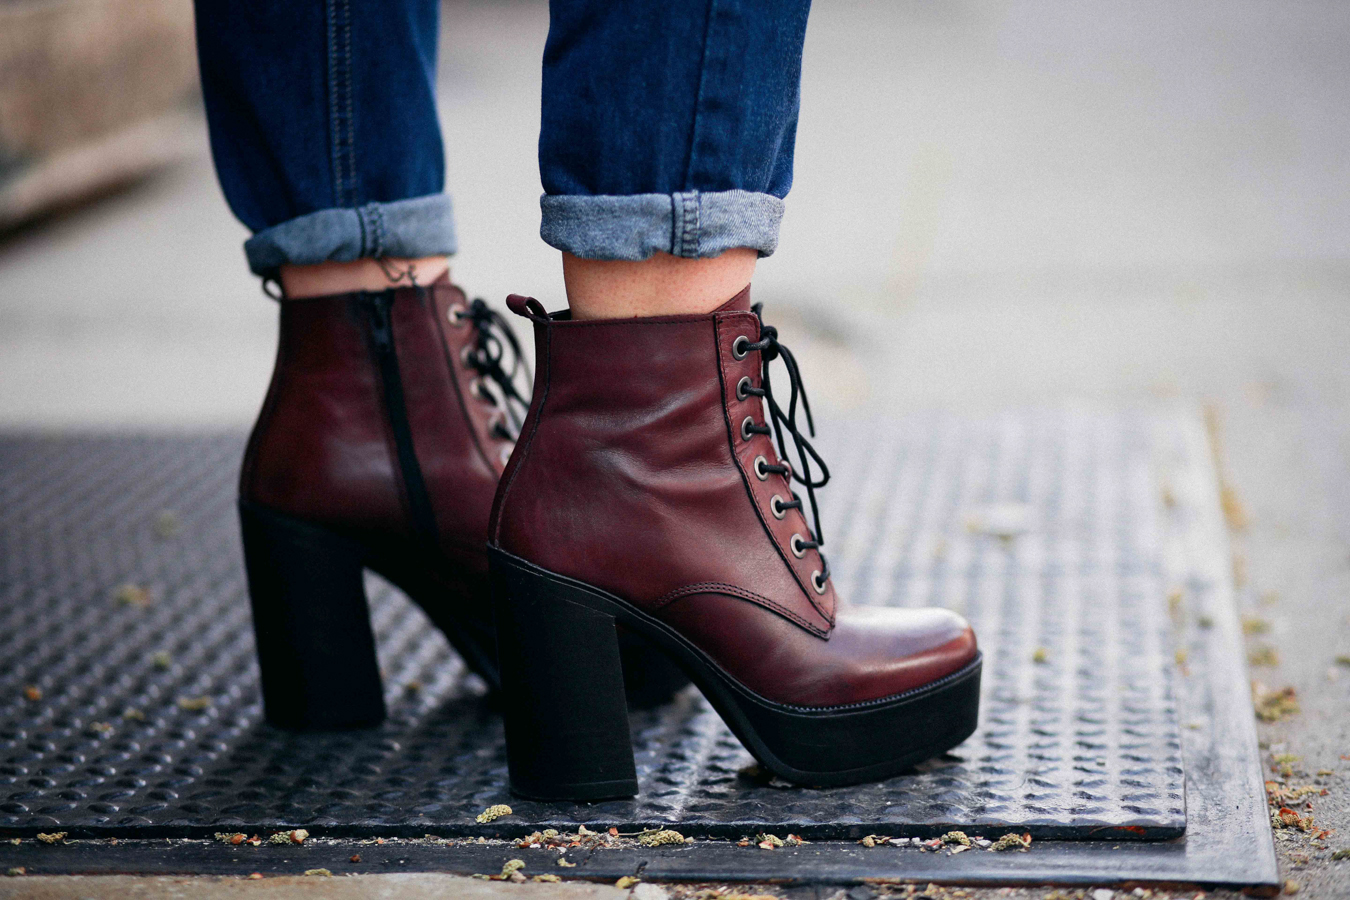 Le Happy wearing Steve Madden Booties